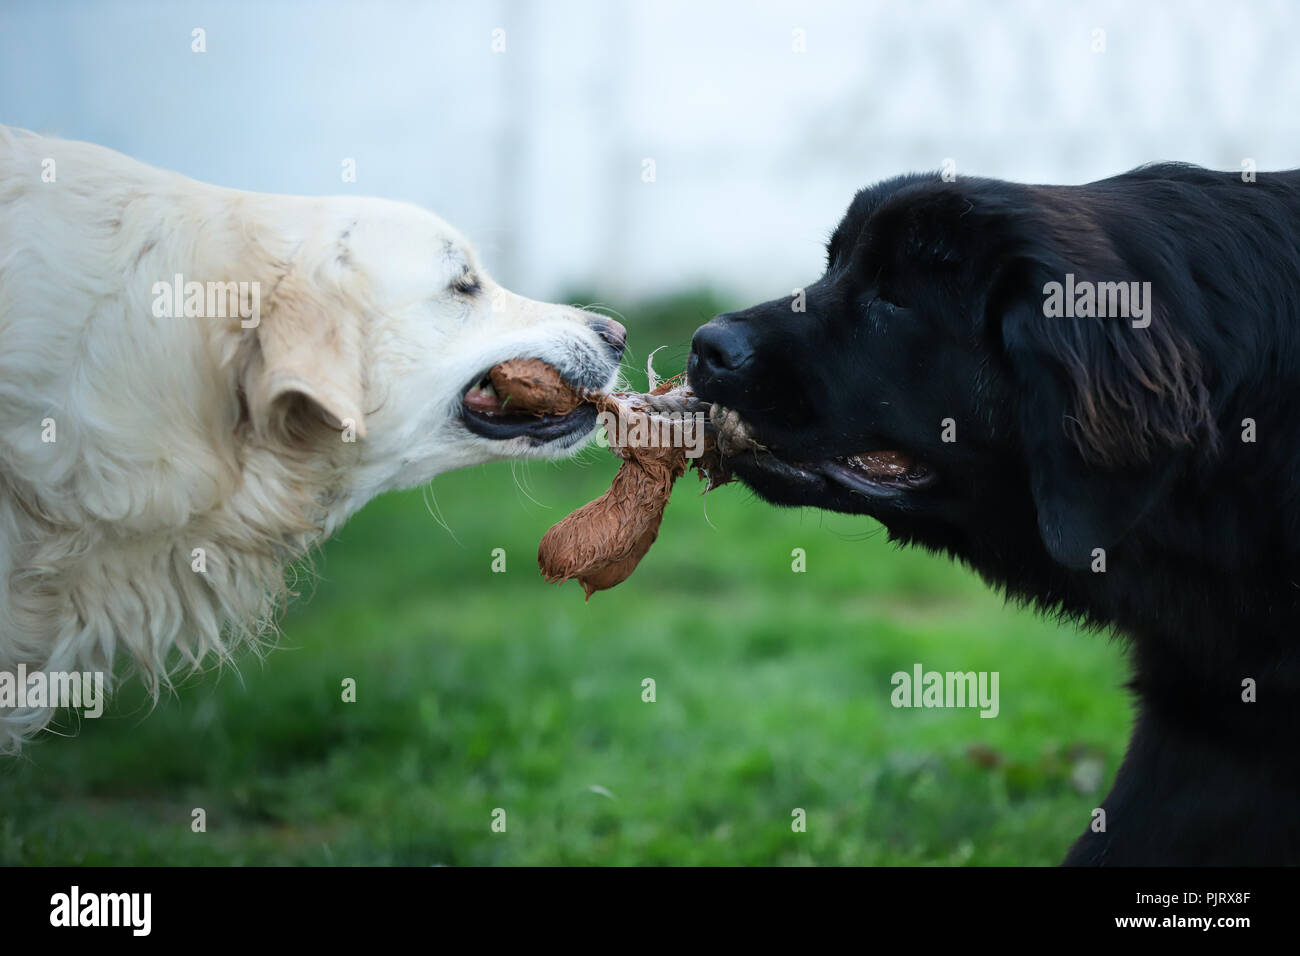 White golden retriever and black newfoundland dog play tug of war with a dog toy - Stock Image